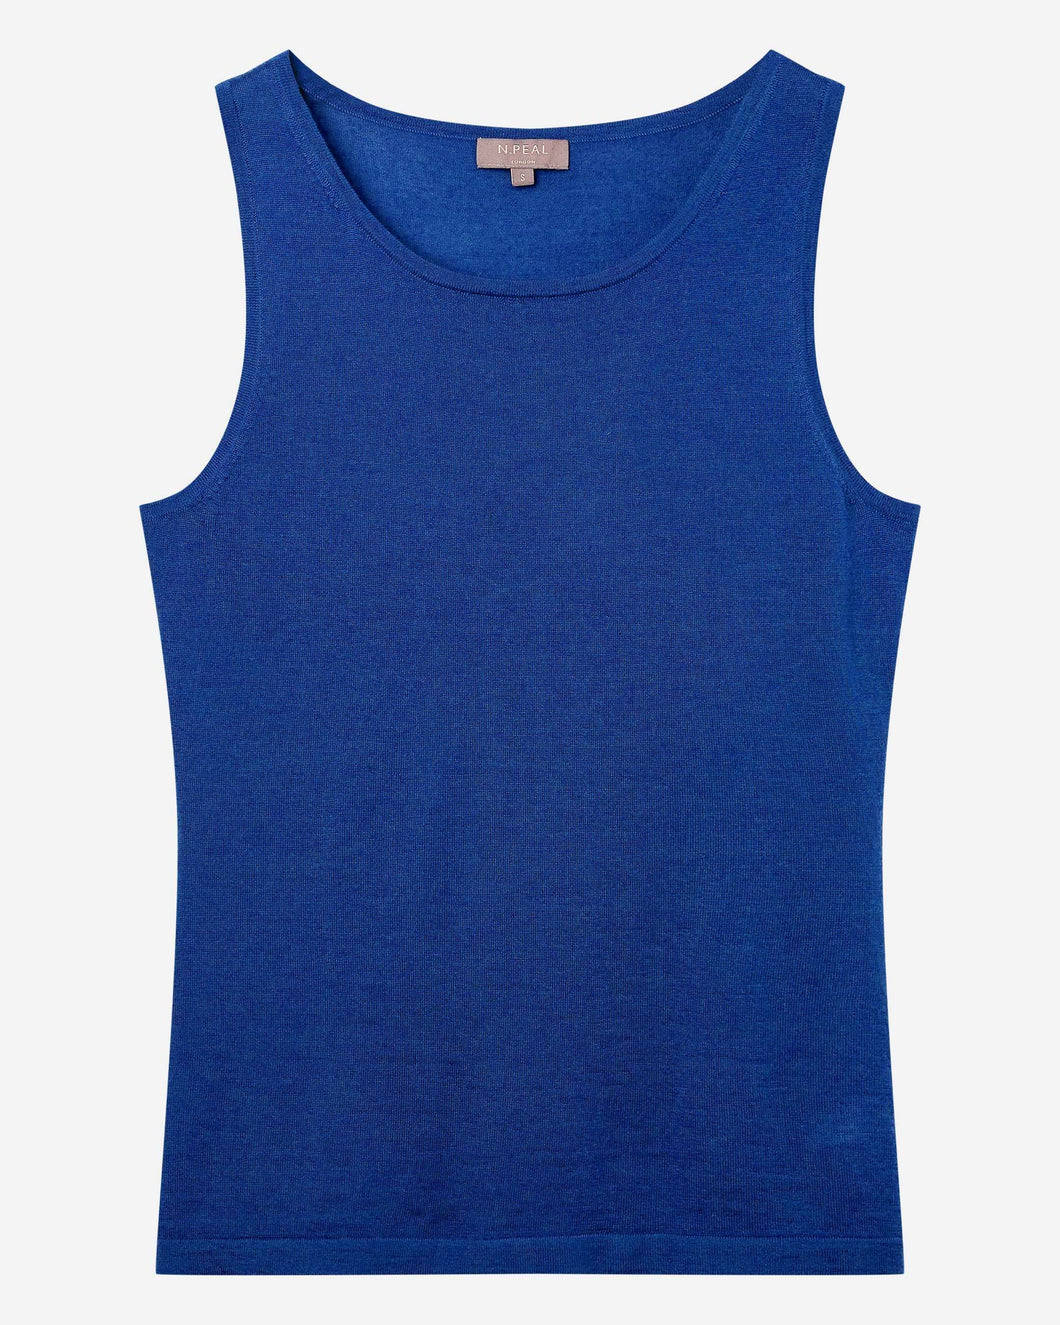 Superfine Cashmere Shell Top Midnight Blue